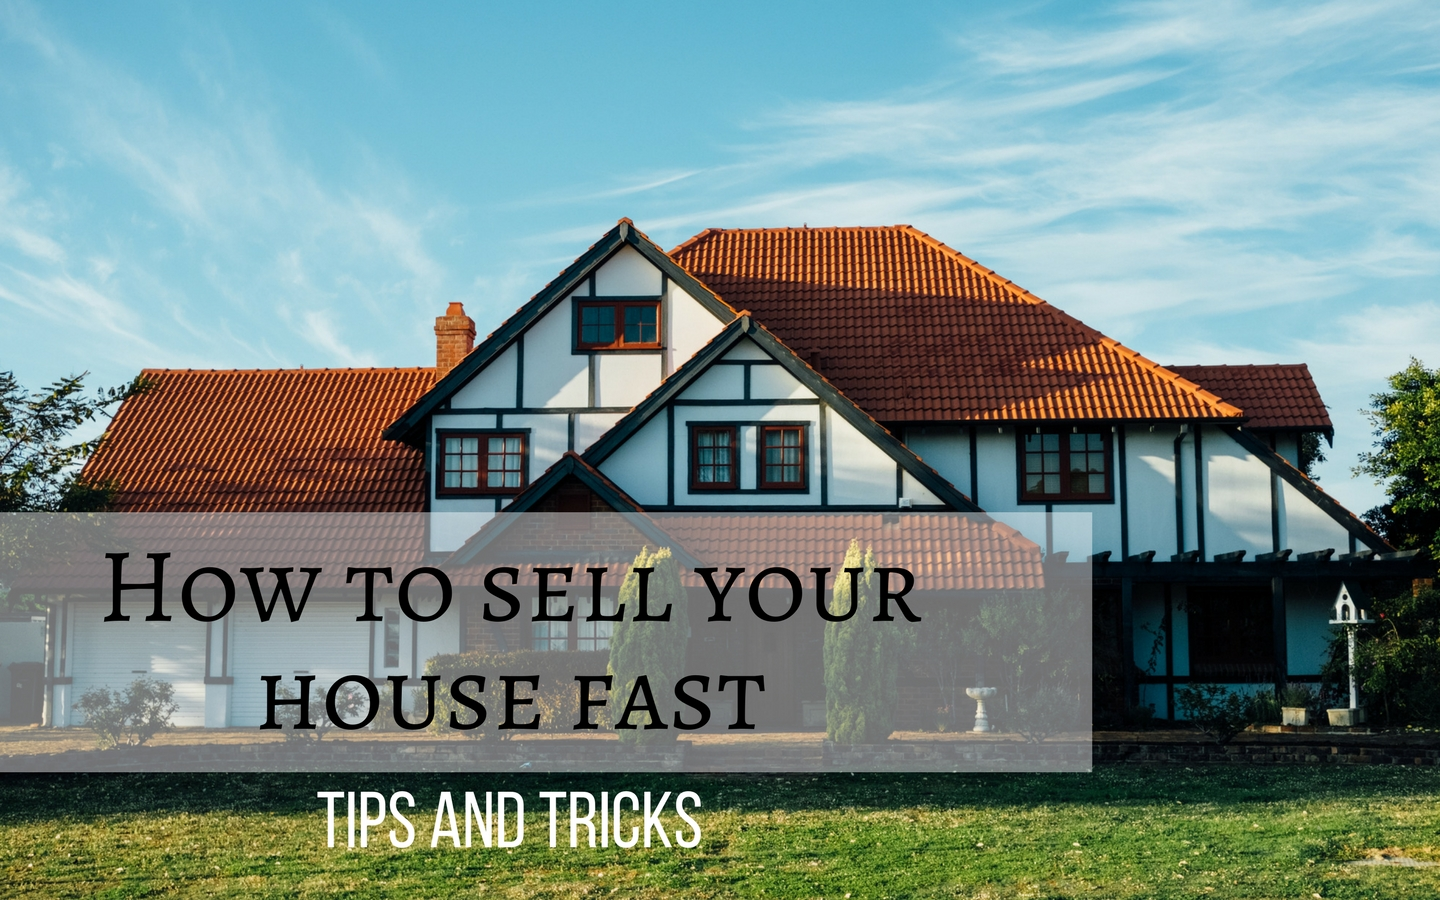 How to sell your house fast 2